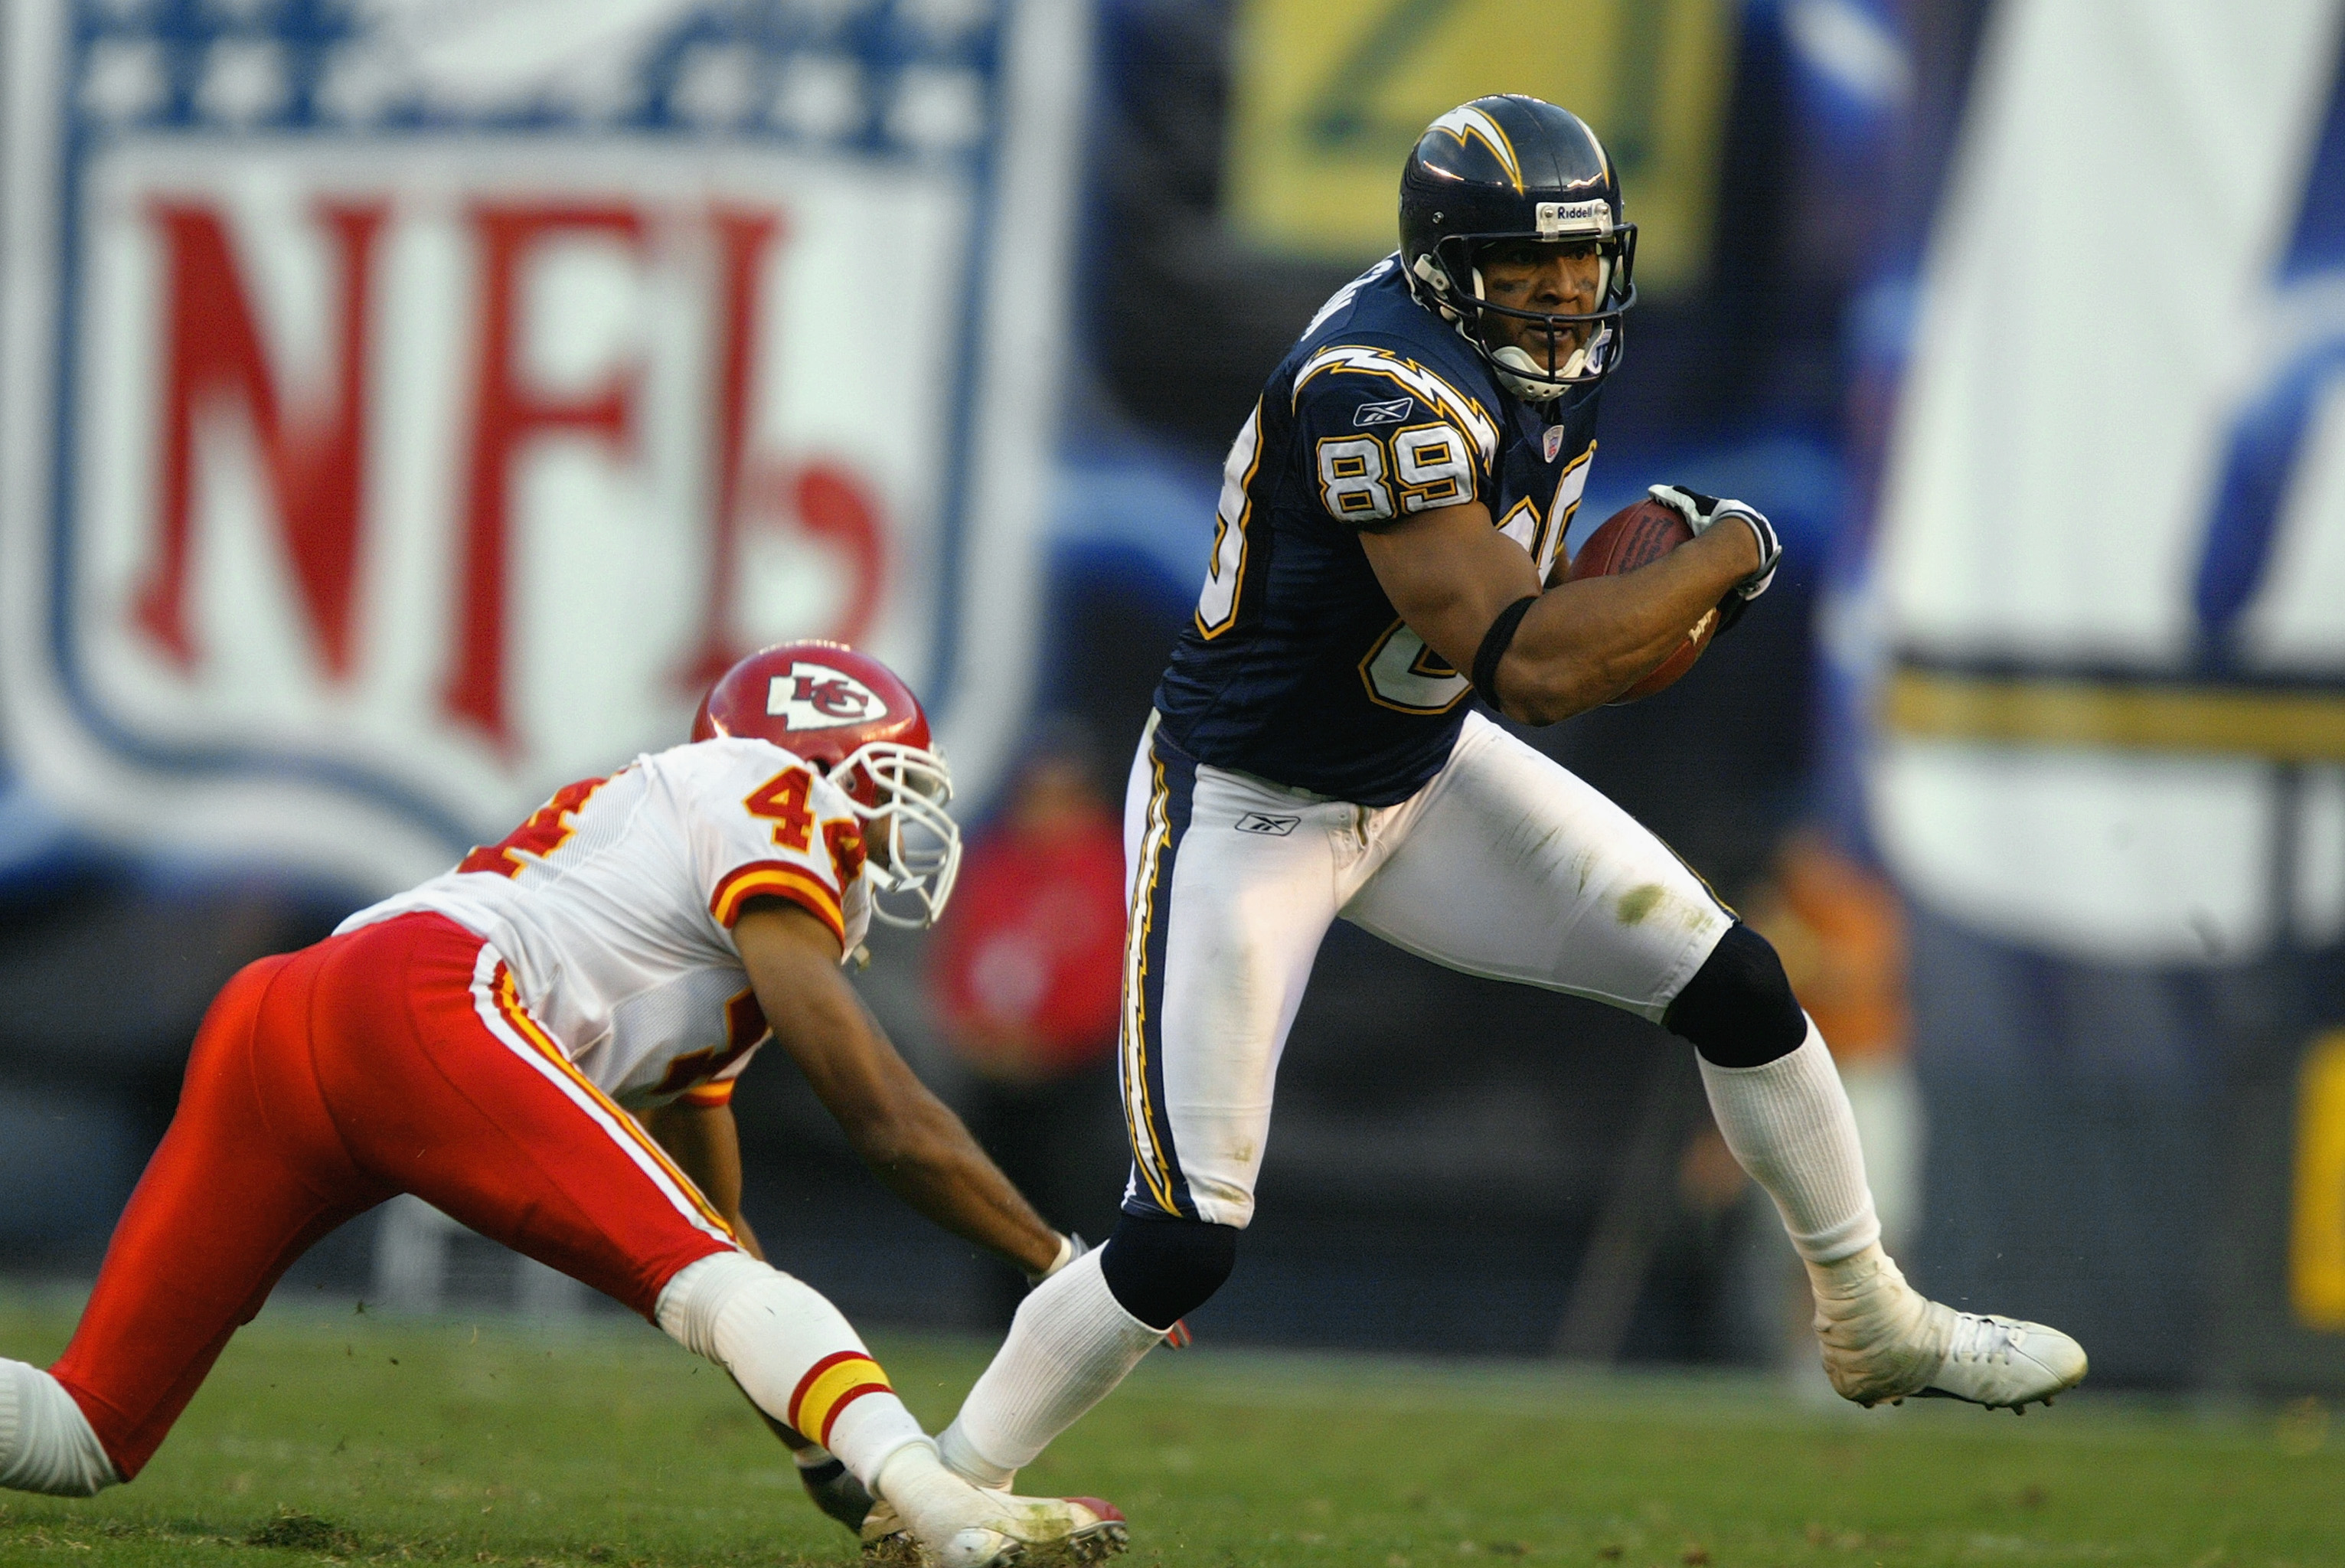 SAN DIEGO - NOVEMBER 30:  Wide receiver David Boston #89 of the San Diego Chargers carries the ball around cornerback Eric Warfield #42 of the Kansas City Chiefs during the game at Qualcomm Stadium on November 30, 2003 in San Diego, California. The Chiefs